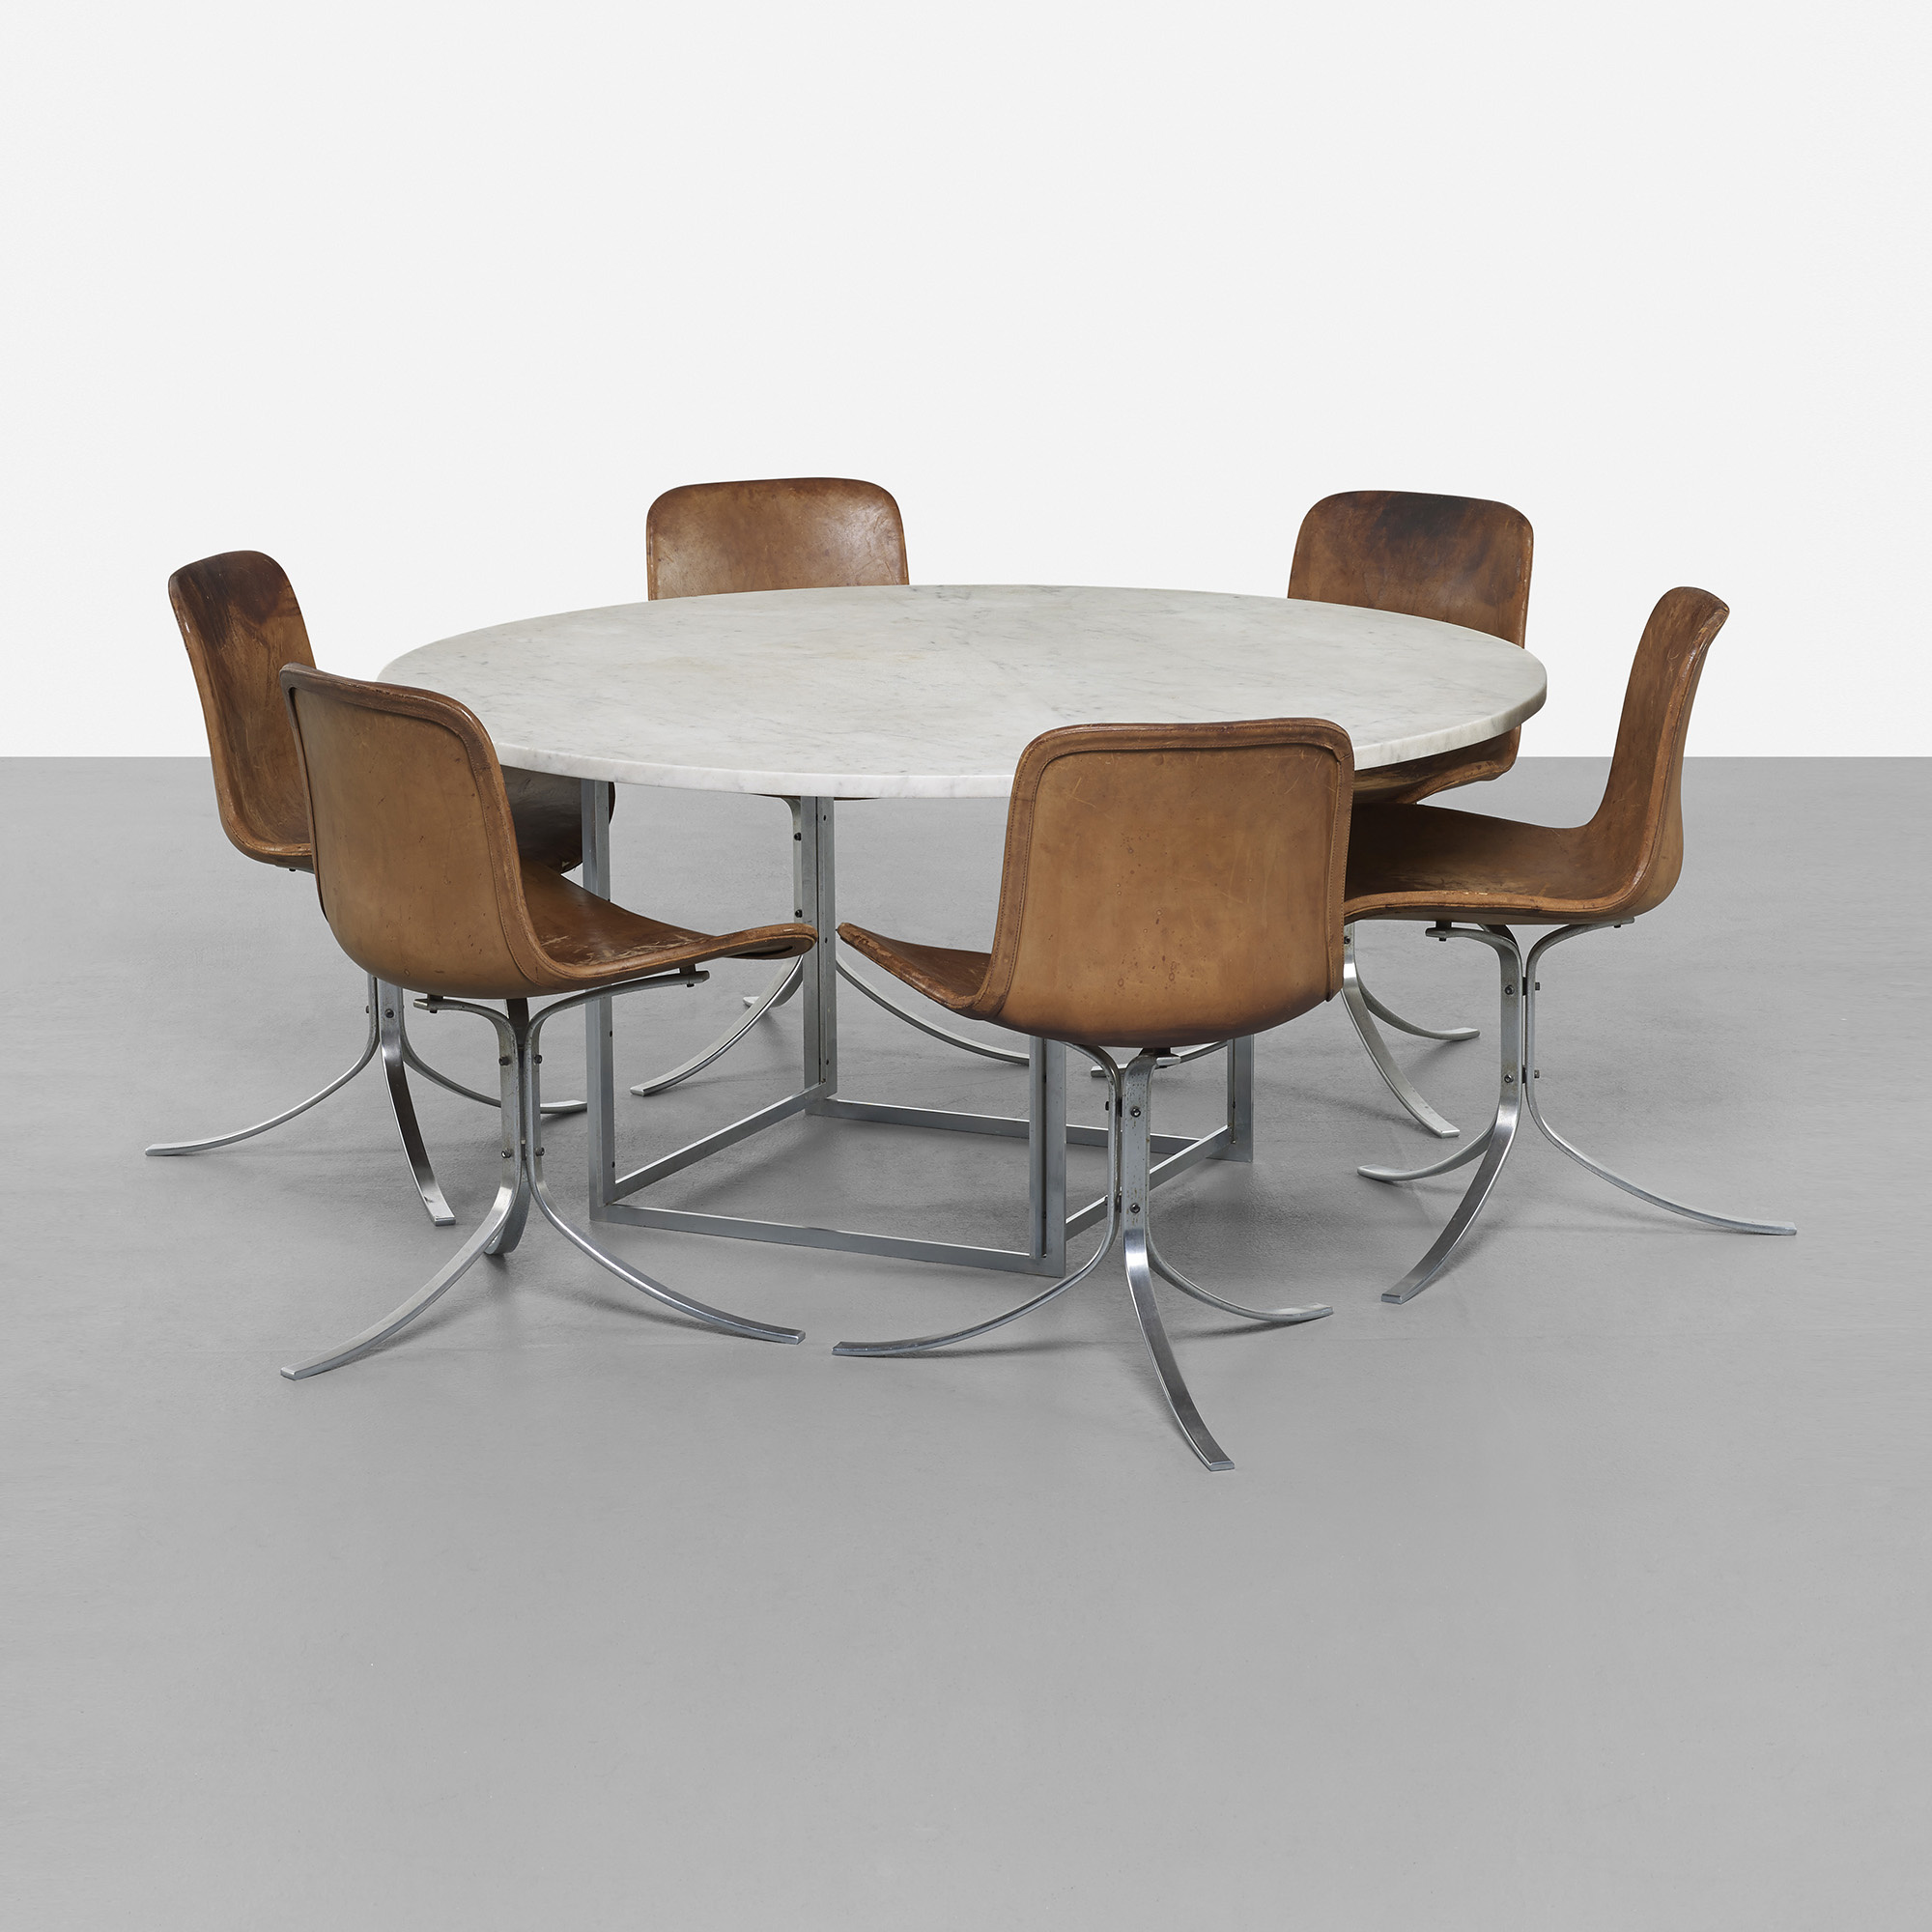 furniture poul kjaerholm pk54. 201: Poul Kjaerholm / PK 54 Dining Table (2 Of 4) Furniture Pk54 E